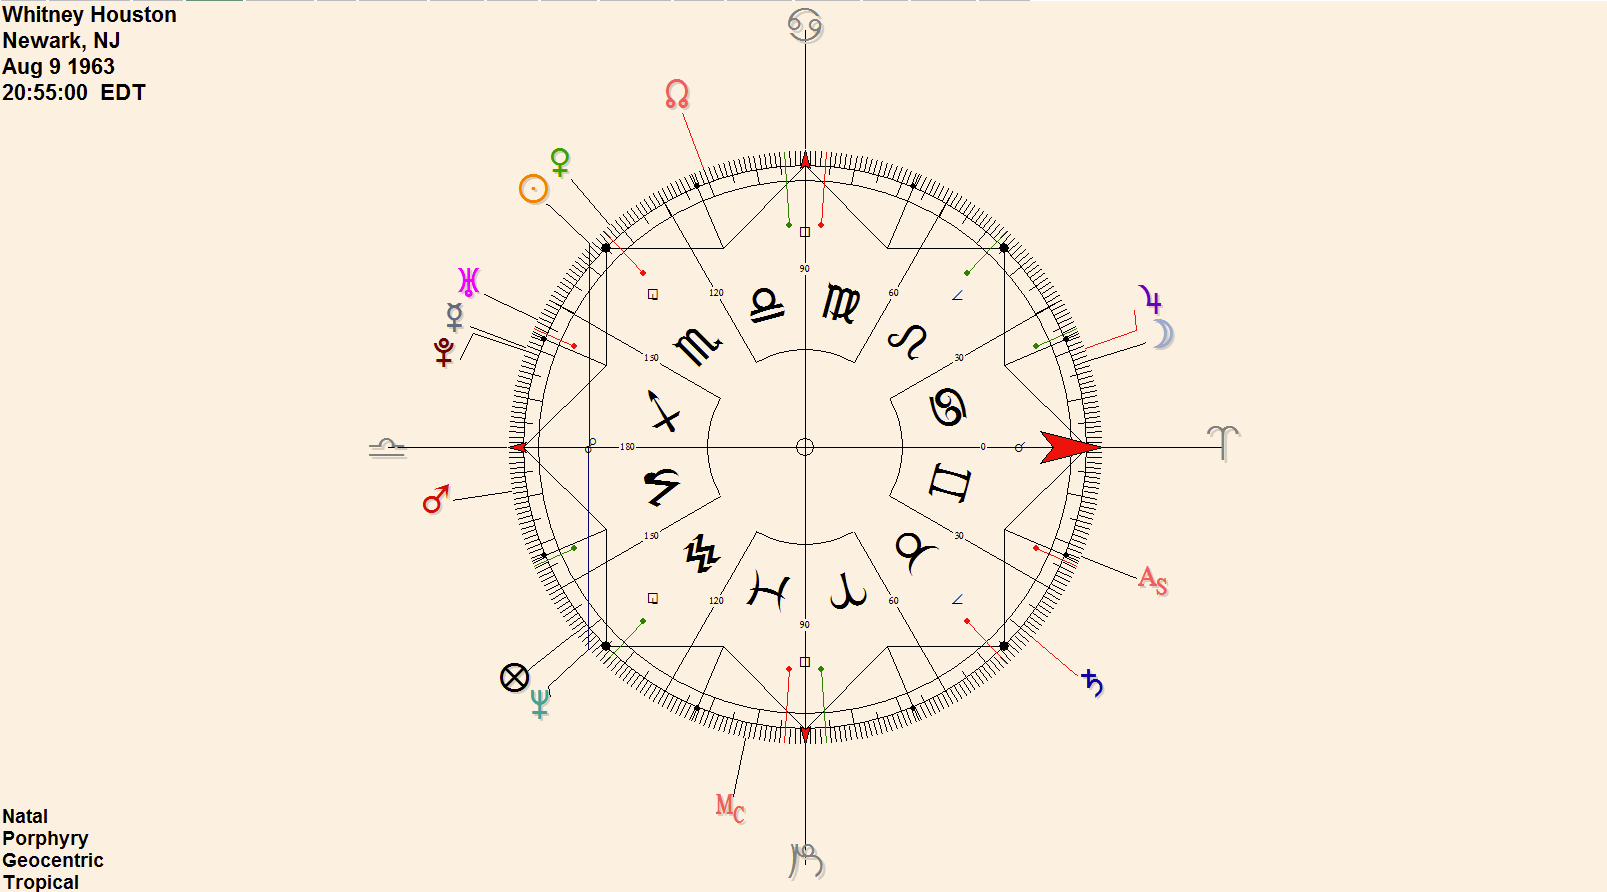 Urania designs blog falling symmetrically around the arieslibra axis or equinoctial points is sun to neptune this illuminates her mystique and appeal but is likely nvjuhfo Choice Image